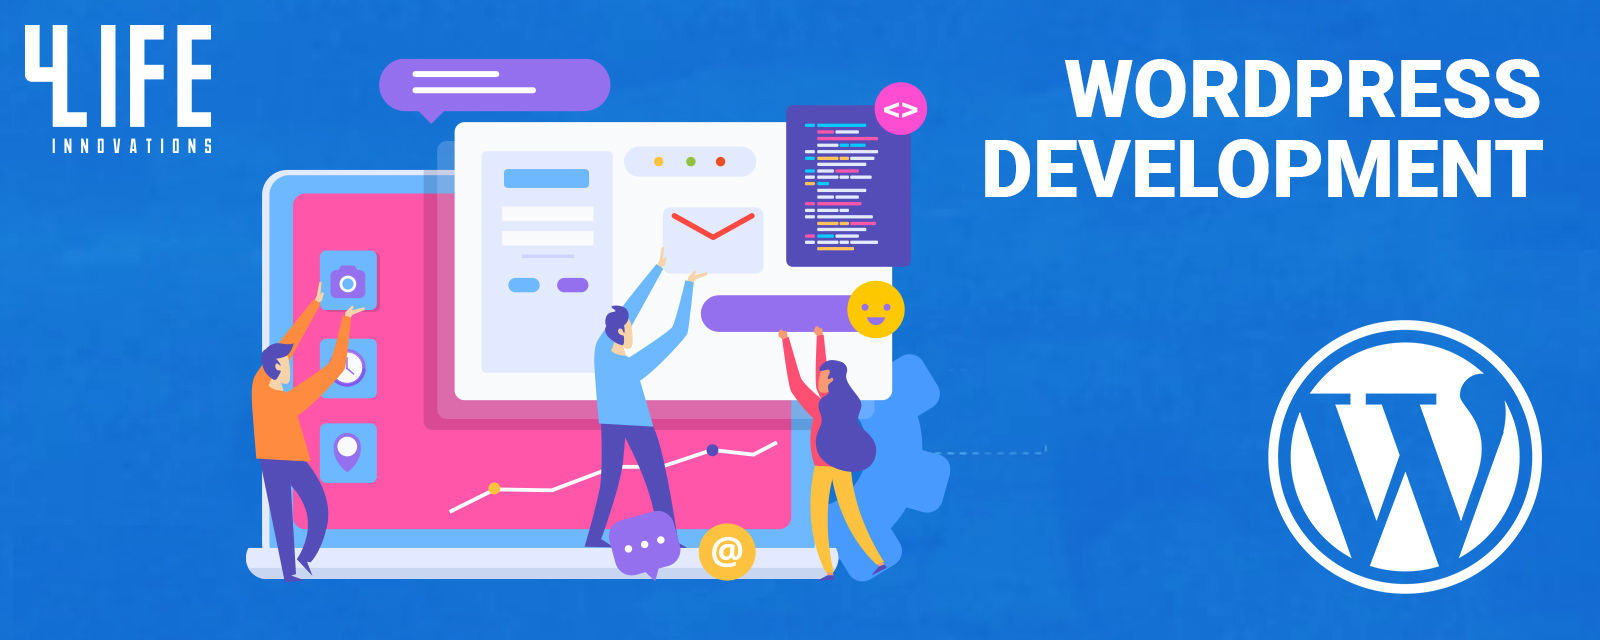 WordPress Development Company USA - WordPress Development Services